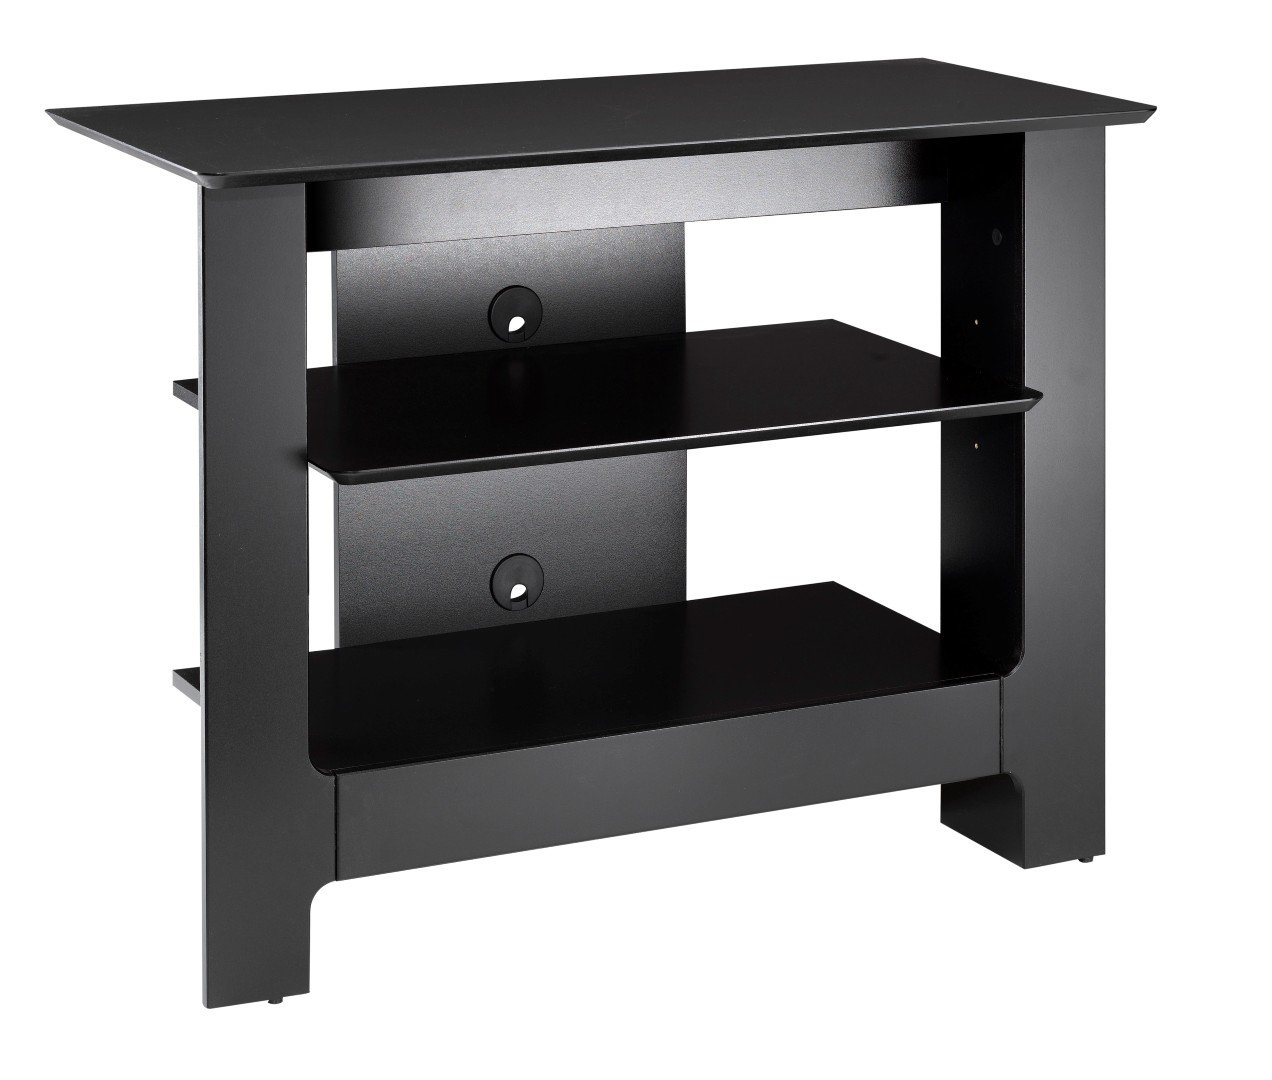 Pinnacle 31-inch Tall Boy TV Stand 100206 from Nexera, Black by Nexera